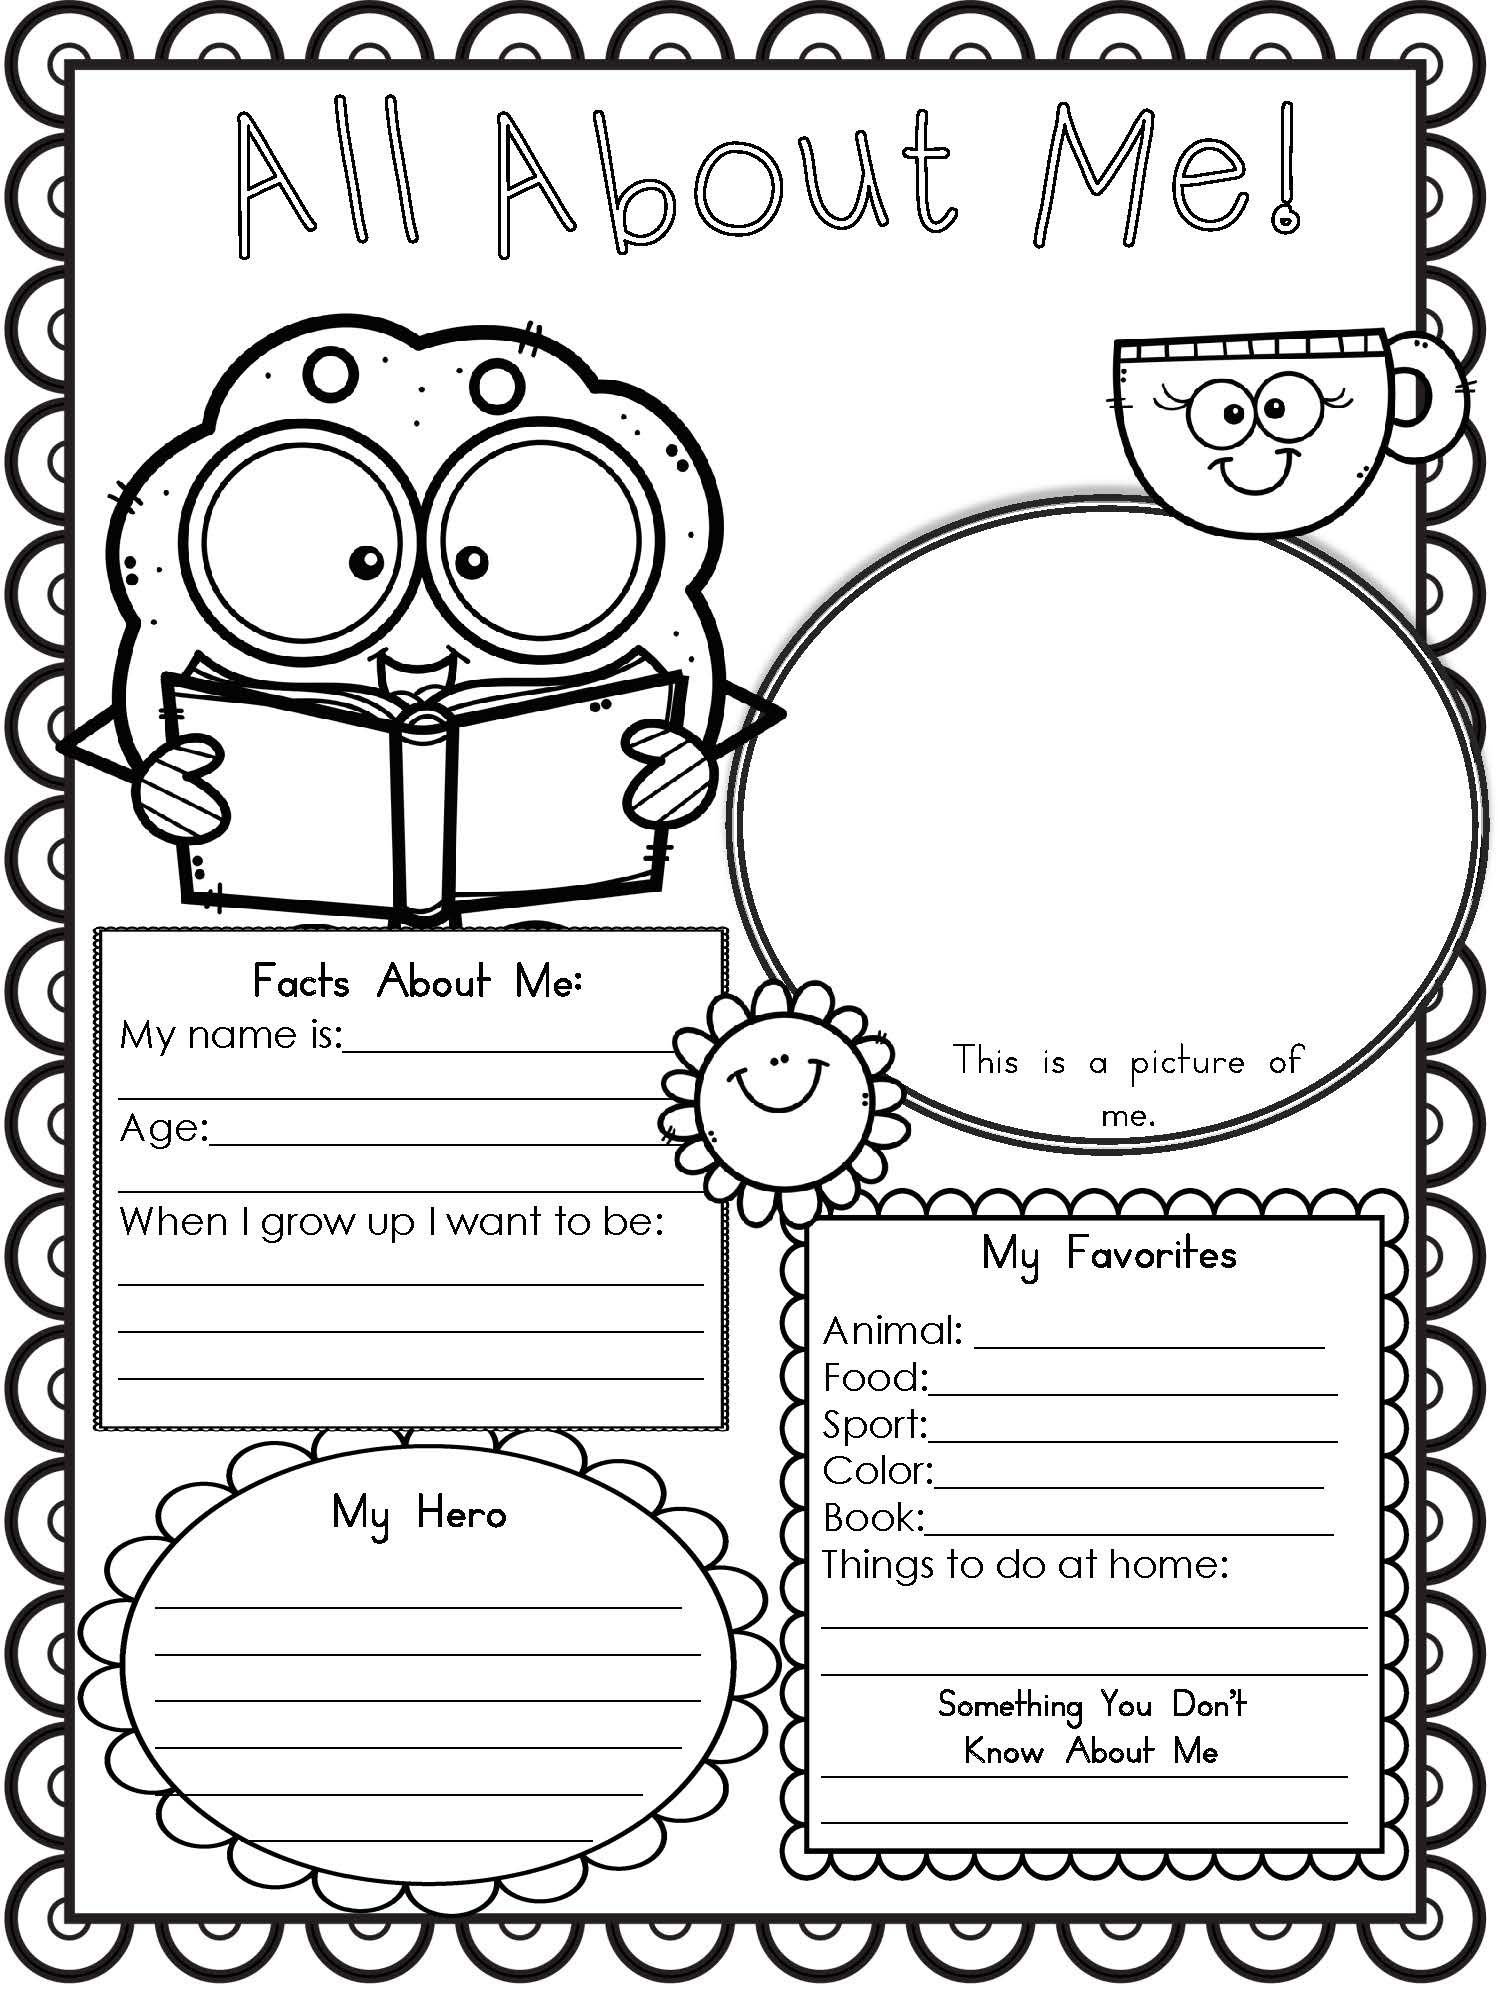 Pin By Erica Sweet On Worksheets And Activities With